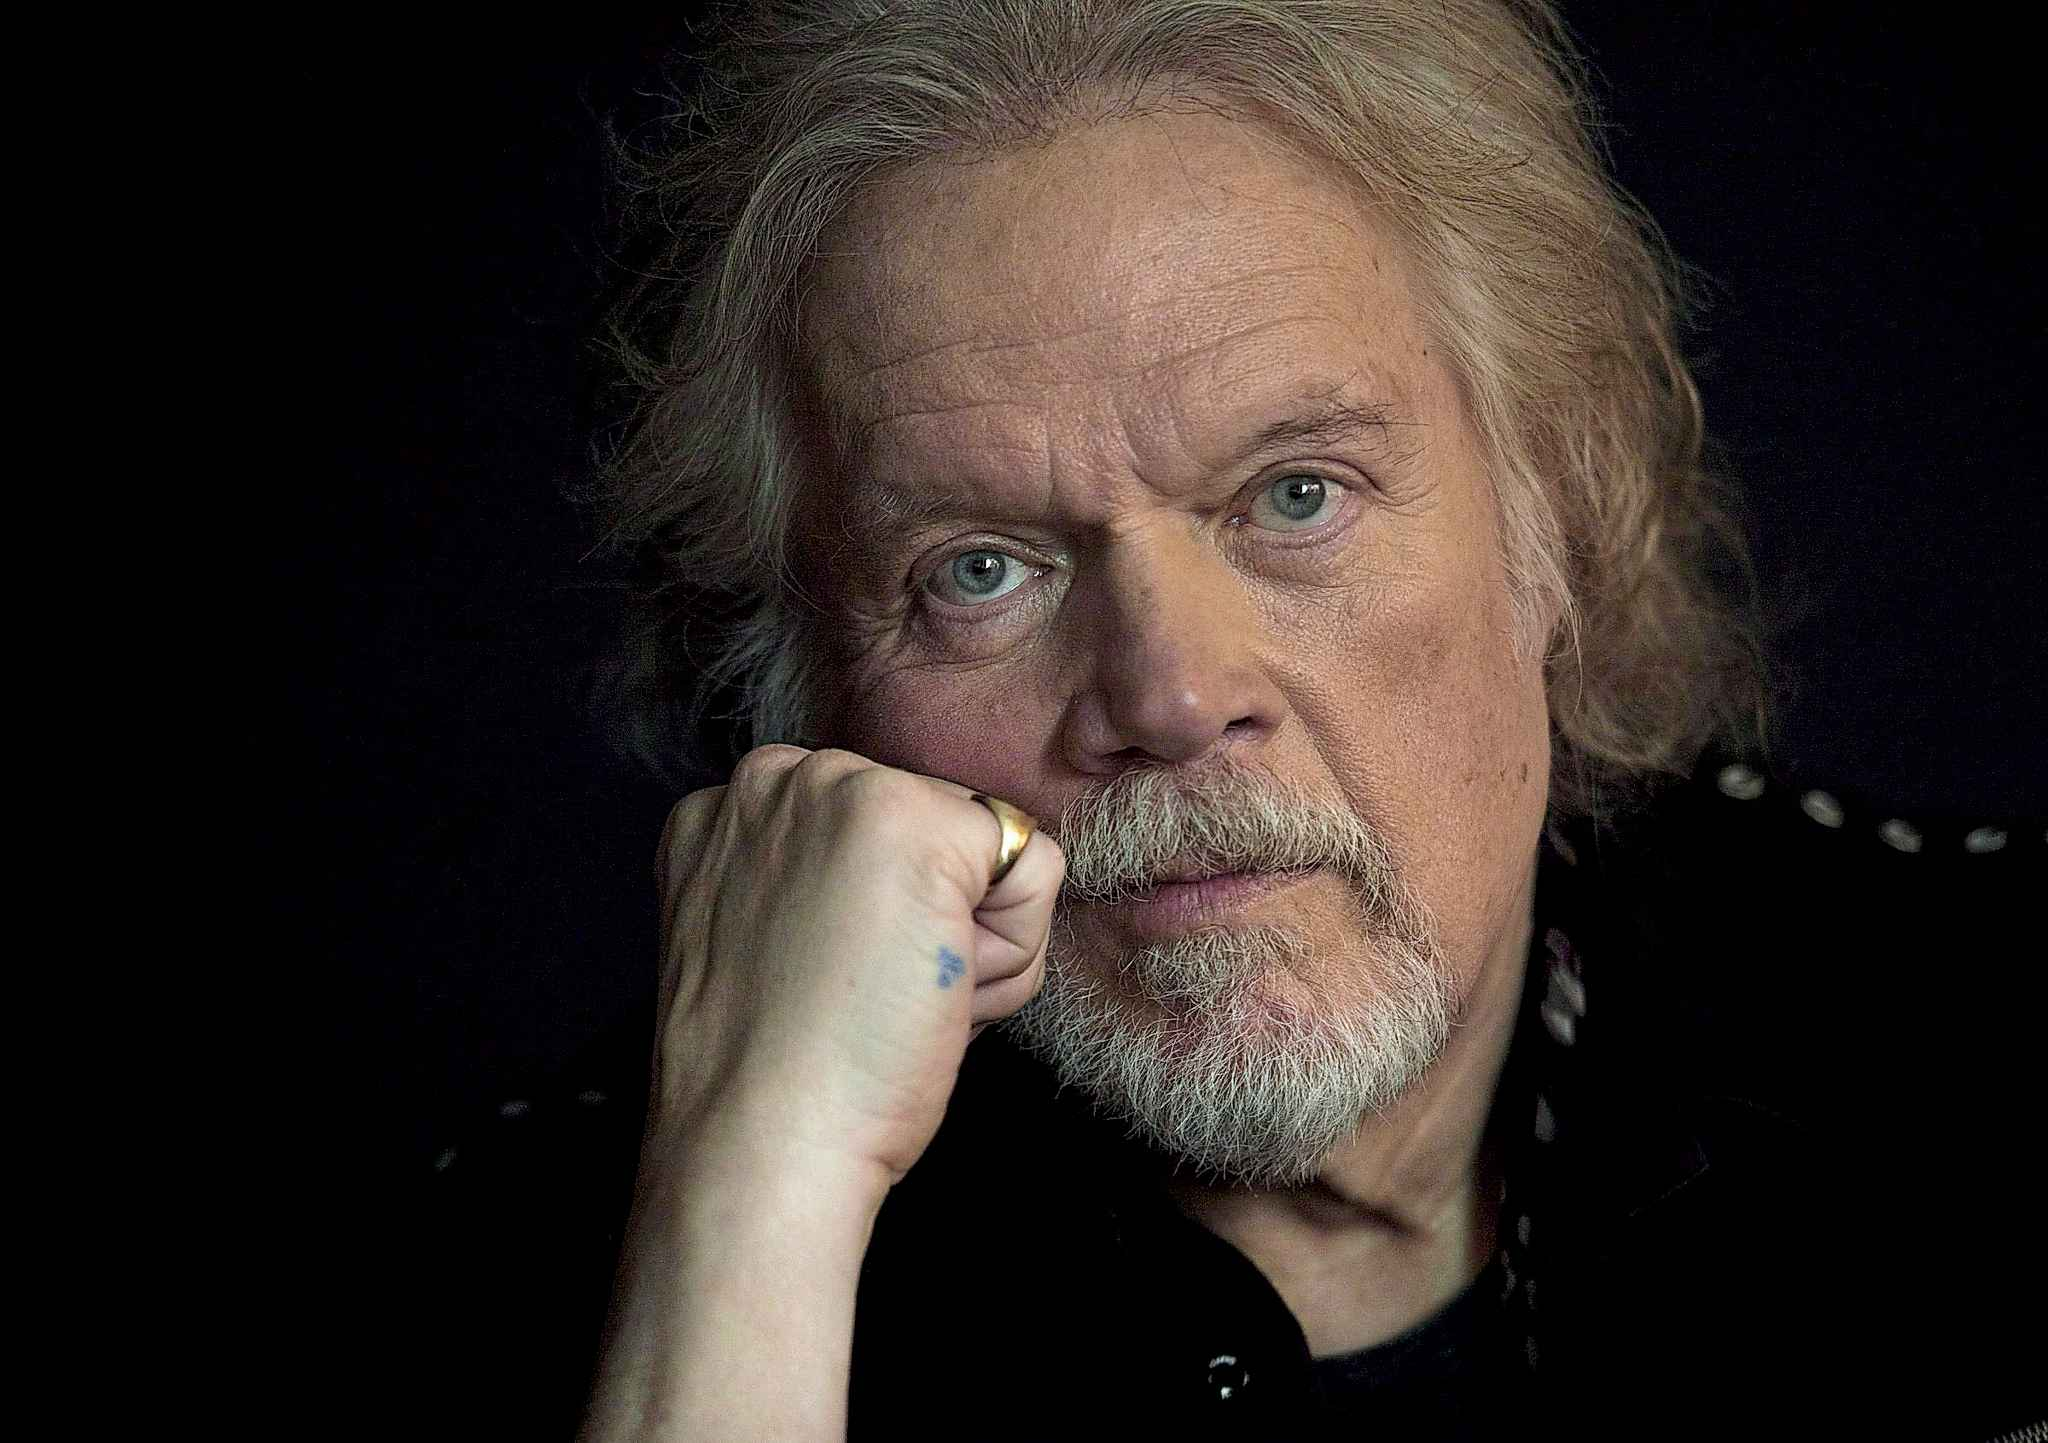 Randy Bachman says Winnipeg's remoteness has been the key to the city's ability to produce decades of critically acclaimed music. (Nathan Denette / The Canadian Press files)